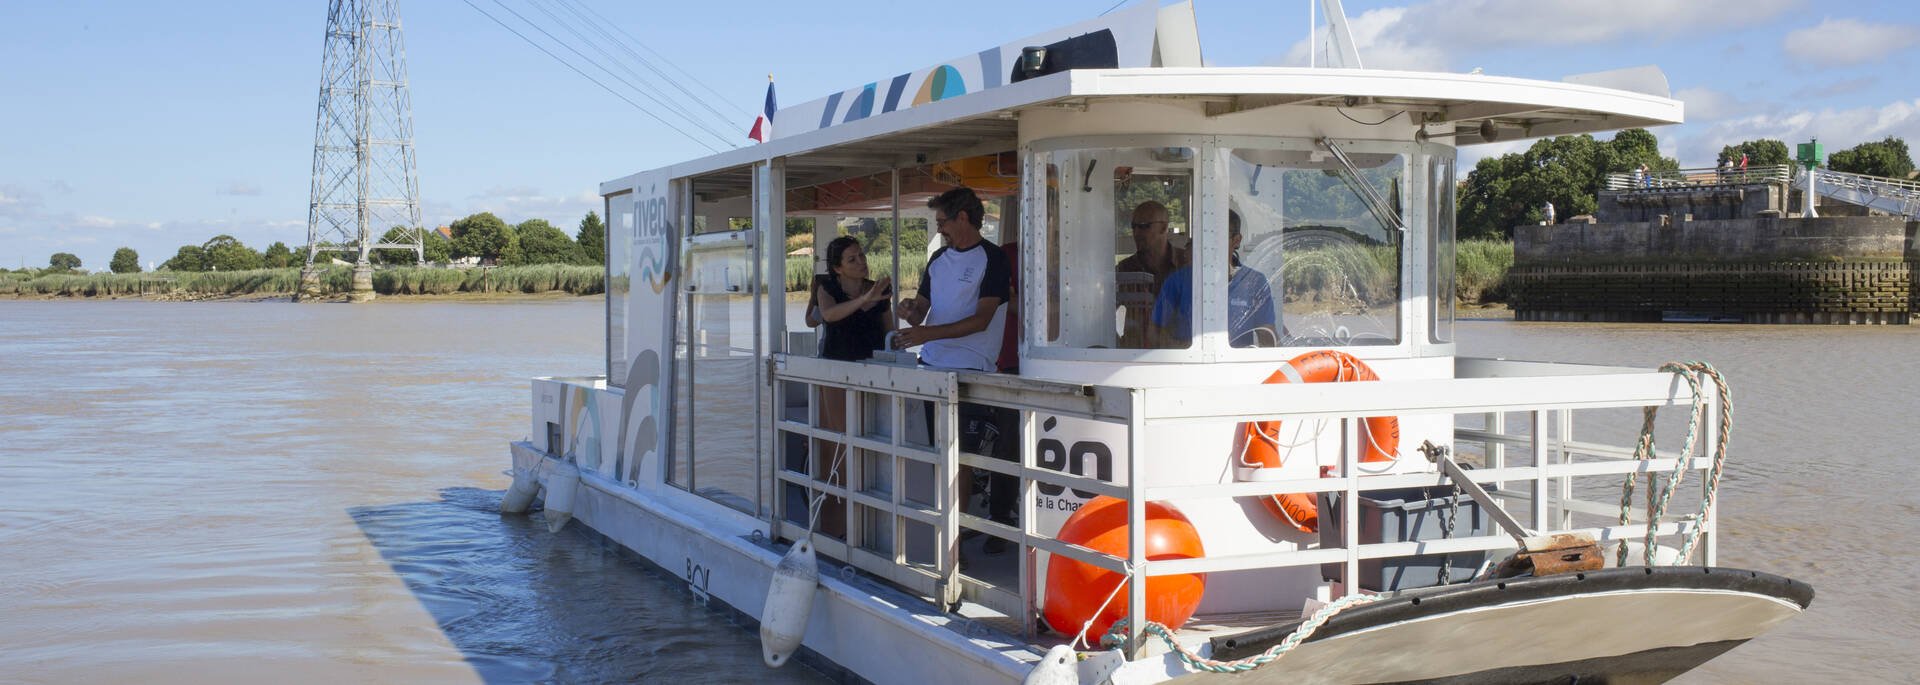 Cross the Charente river on a river boat for Rochefort-Echillais or Rochefort-Soubise - © Simon David